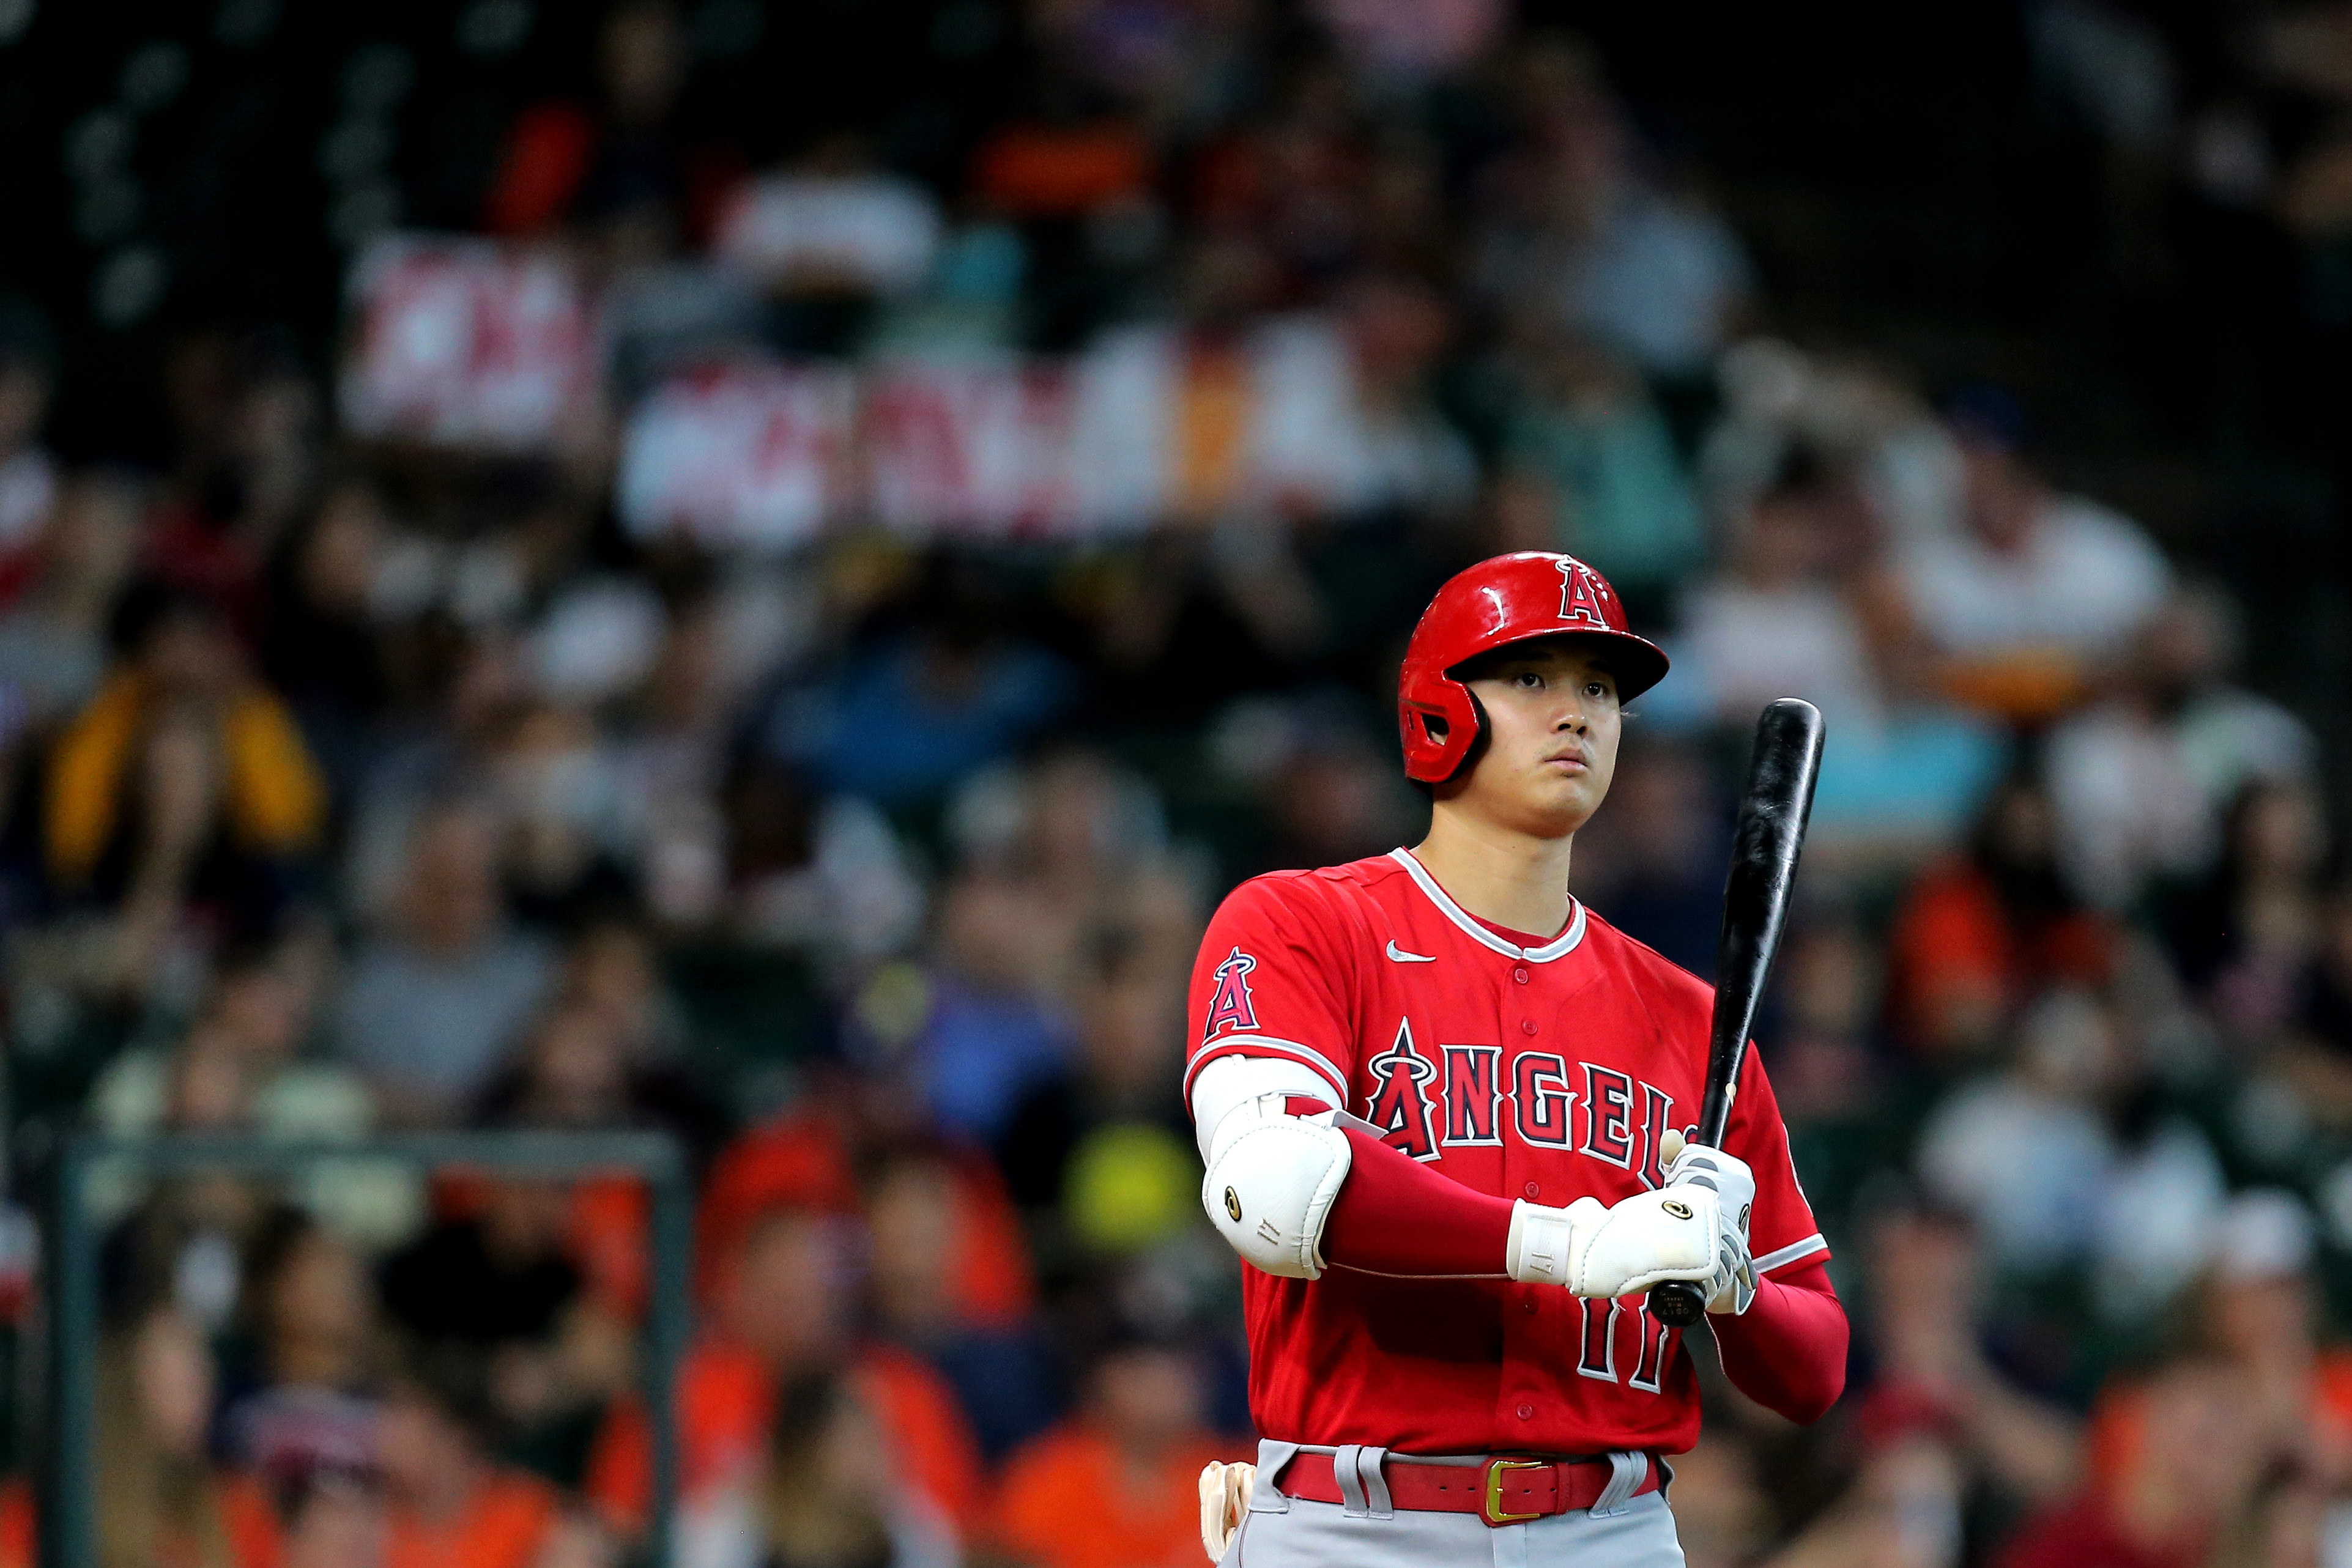 Los Angeles Angels designated hitter Shohei Ohtani (17) steps into the batter's box against the Houston Astros during the third inning at Minute Maid Park.